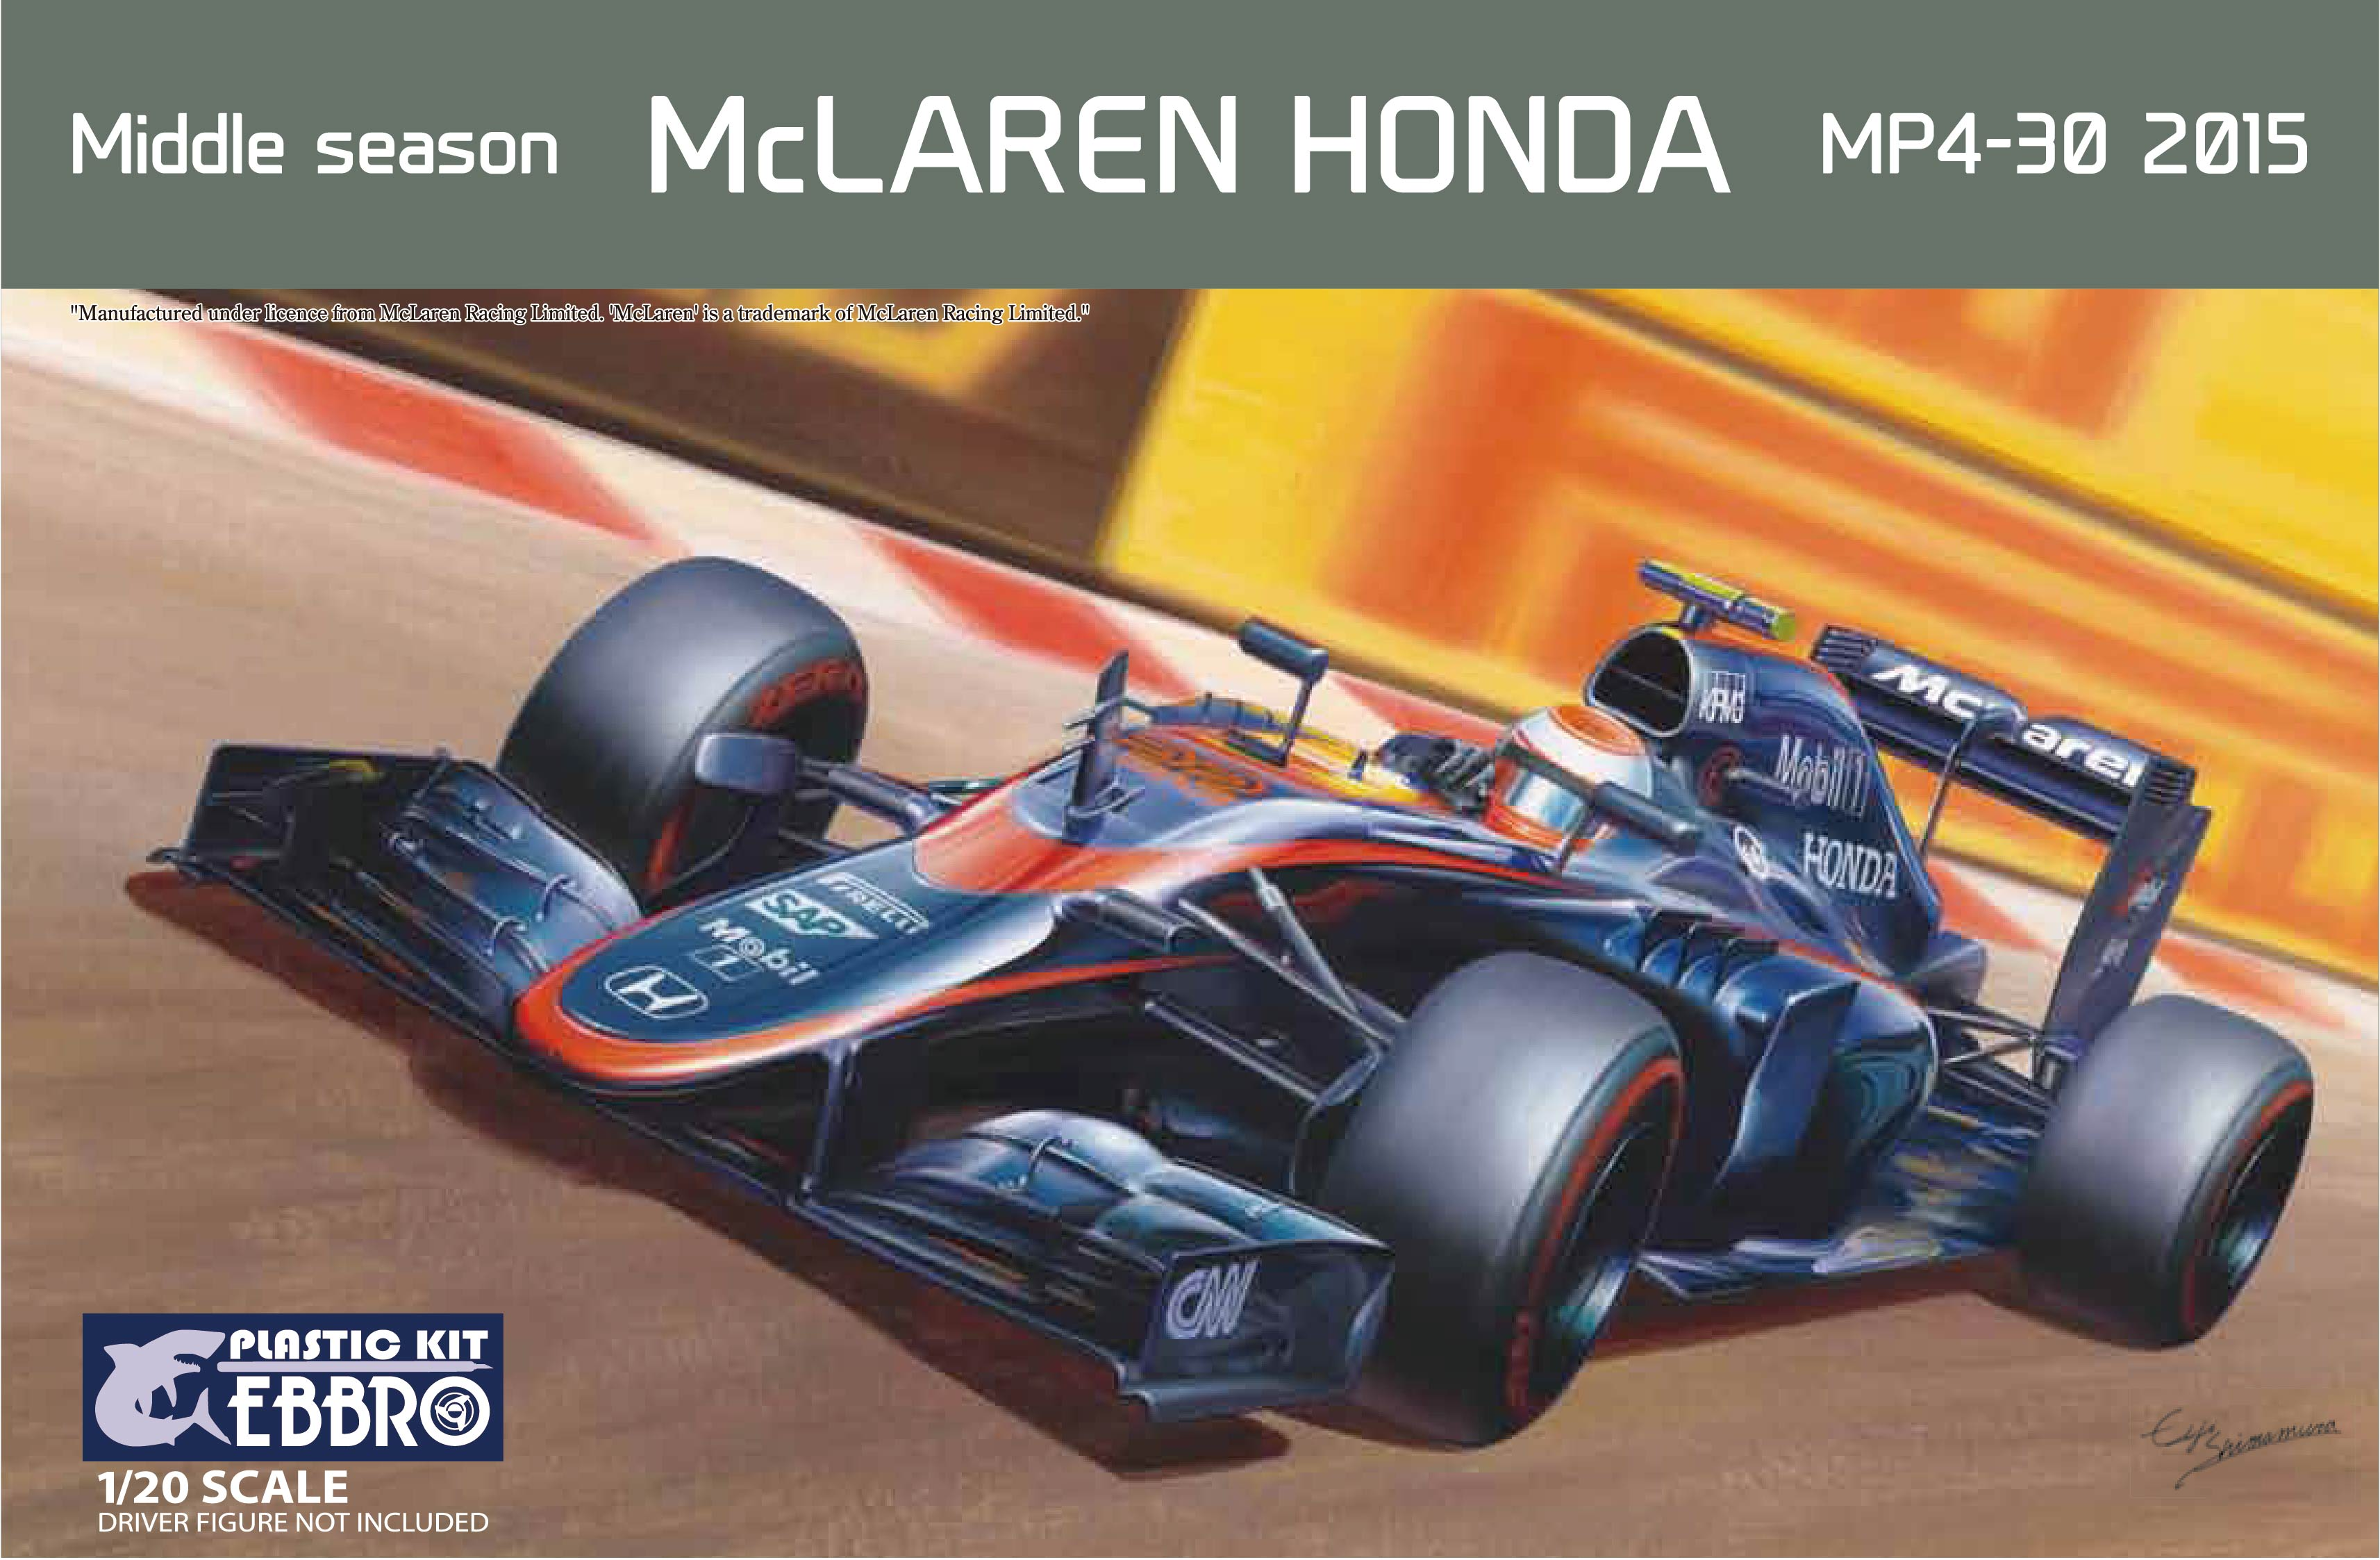 【20014】1/20 McLAREN HONDA MP4-30 2015 Middle Season  【PLASTIC KIT】